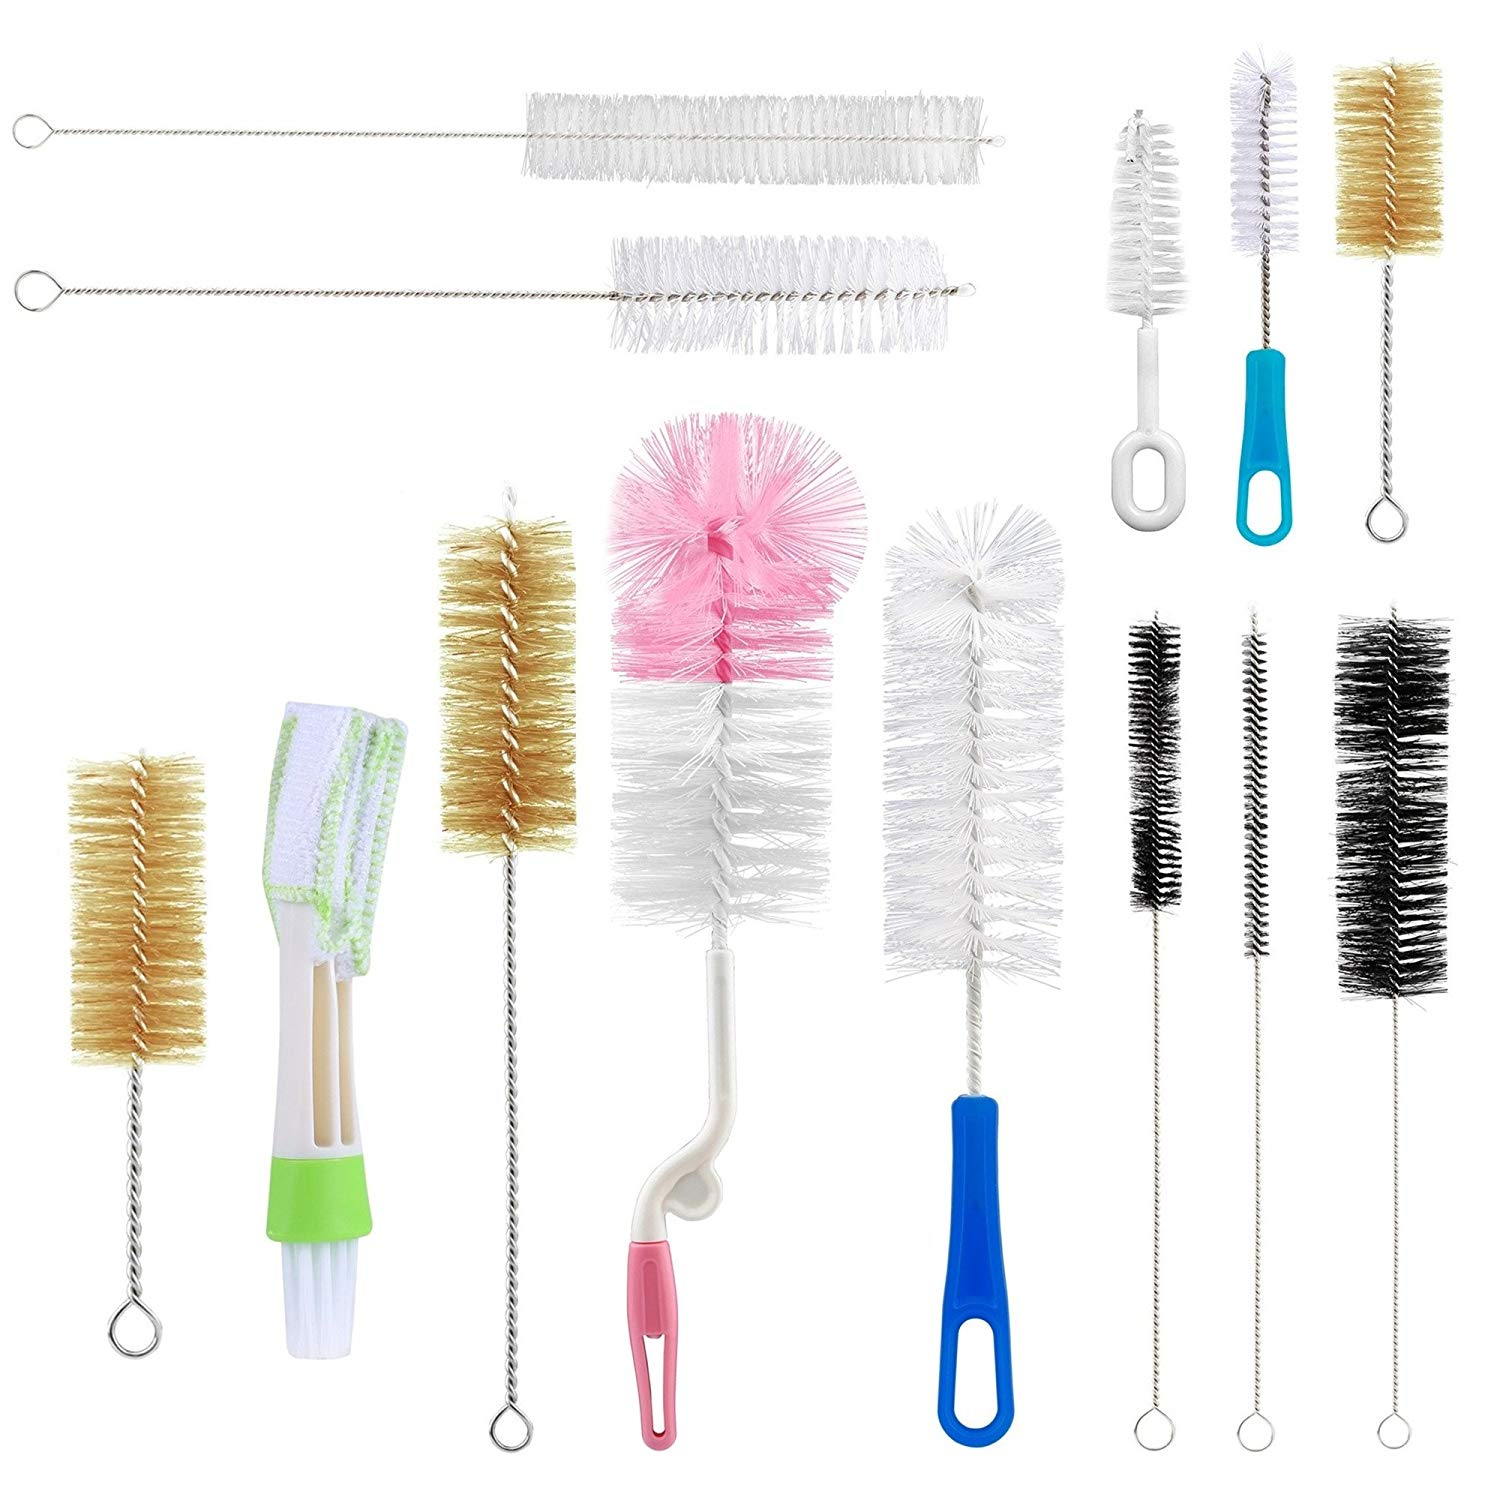 Bottle Brush Sets - Yoassi 13pcs Cleaning Bottle Bristle Brush Cleaner Washer - Long, Soft, Stiff, Small Kits for Baby Bottle, Tubes, Jars